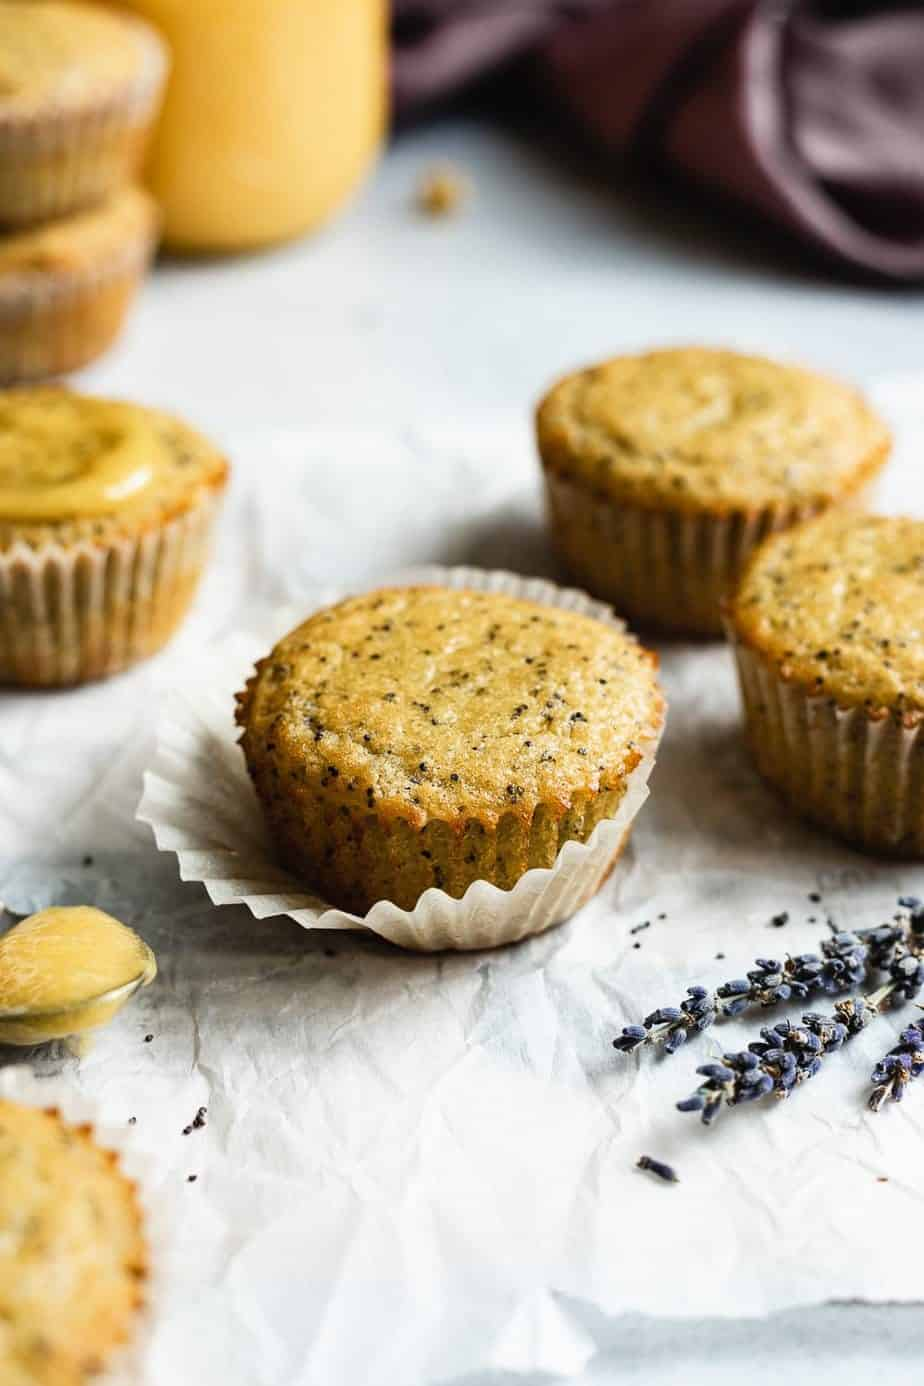 keto lemon poppy seed muffins with lavender in the foreground